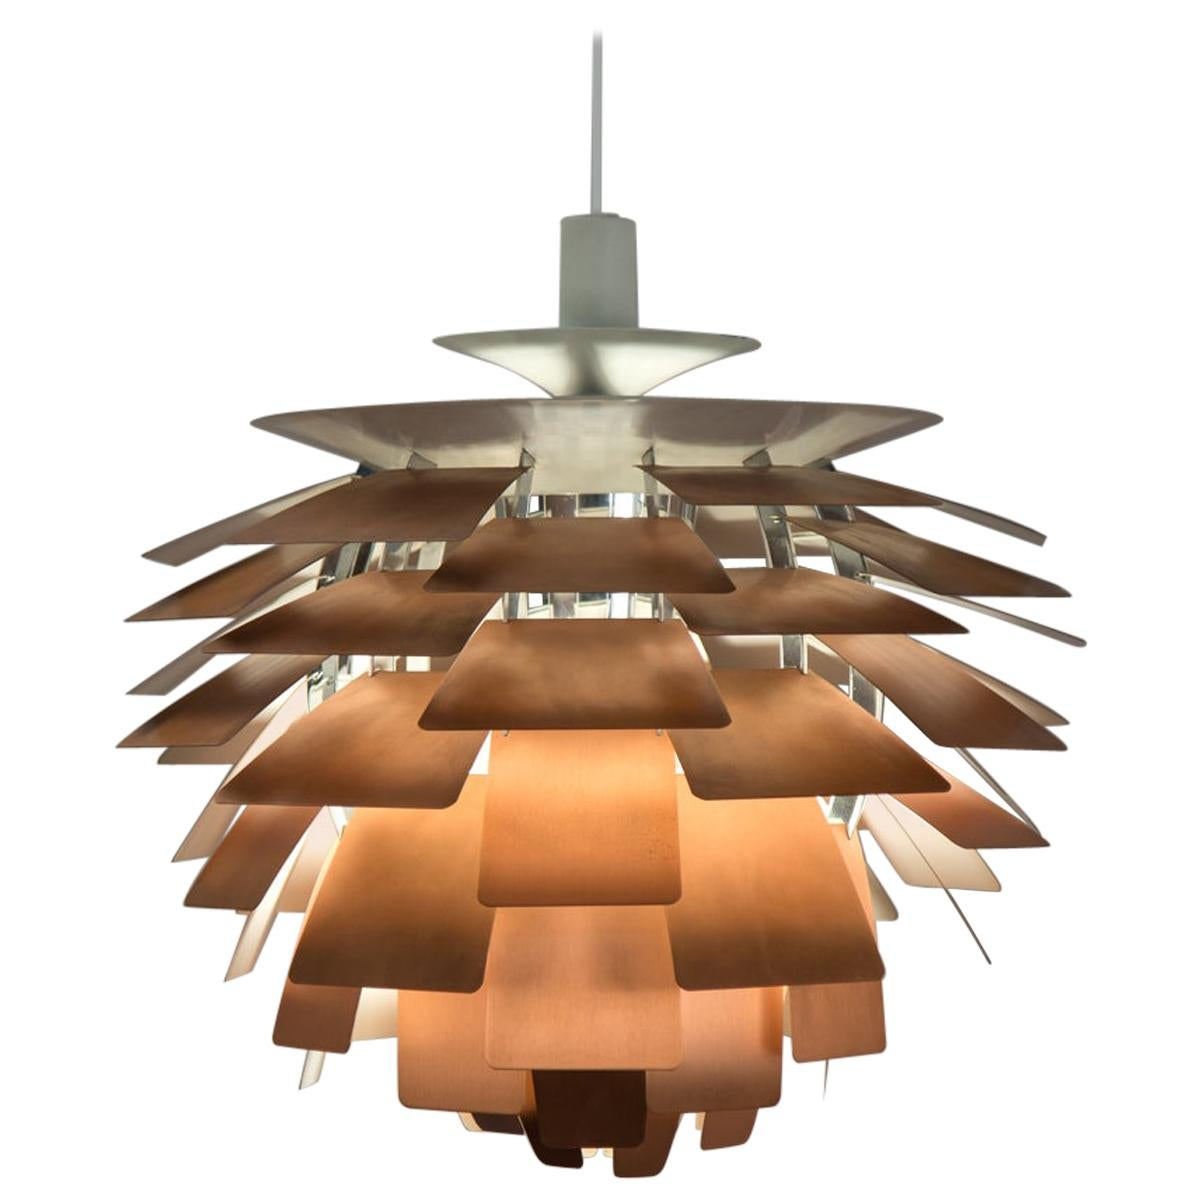 Large Artichoke Lamp by Poul Henningsen